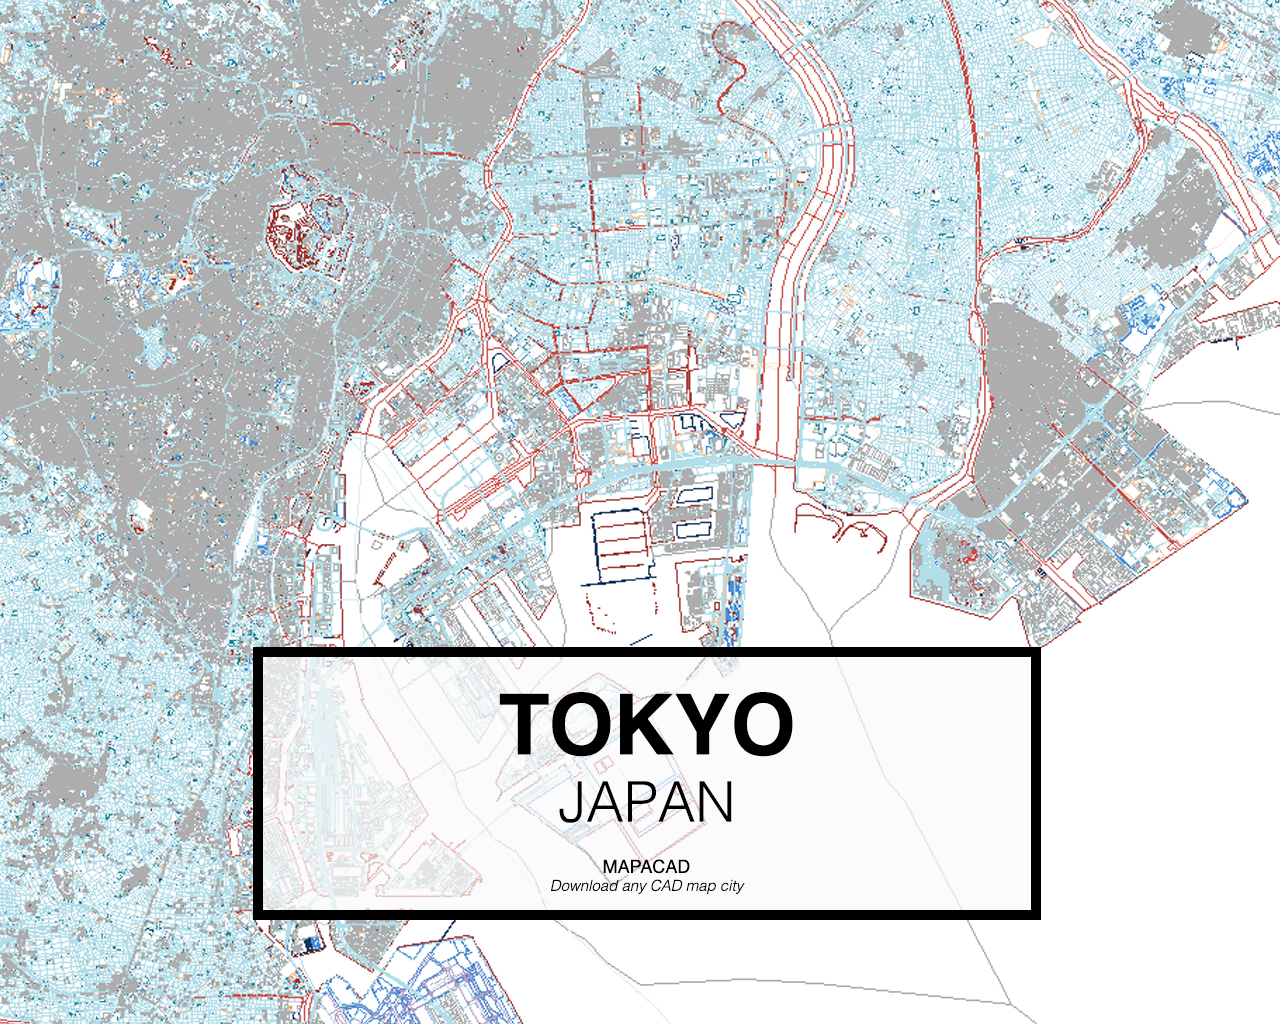 Download any cad map city mapacad tokyo japan 01 mapacad download map cad dwg gumiabroncs Image collections